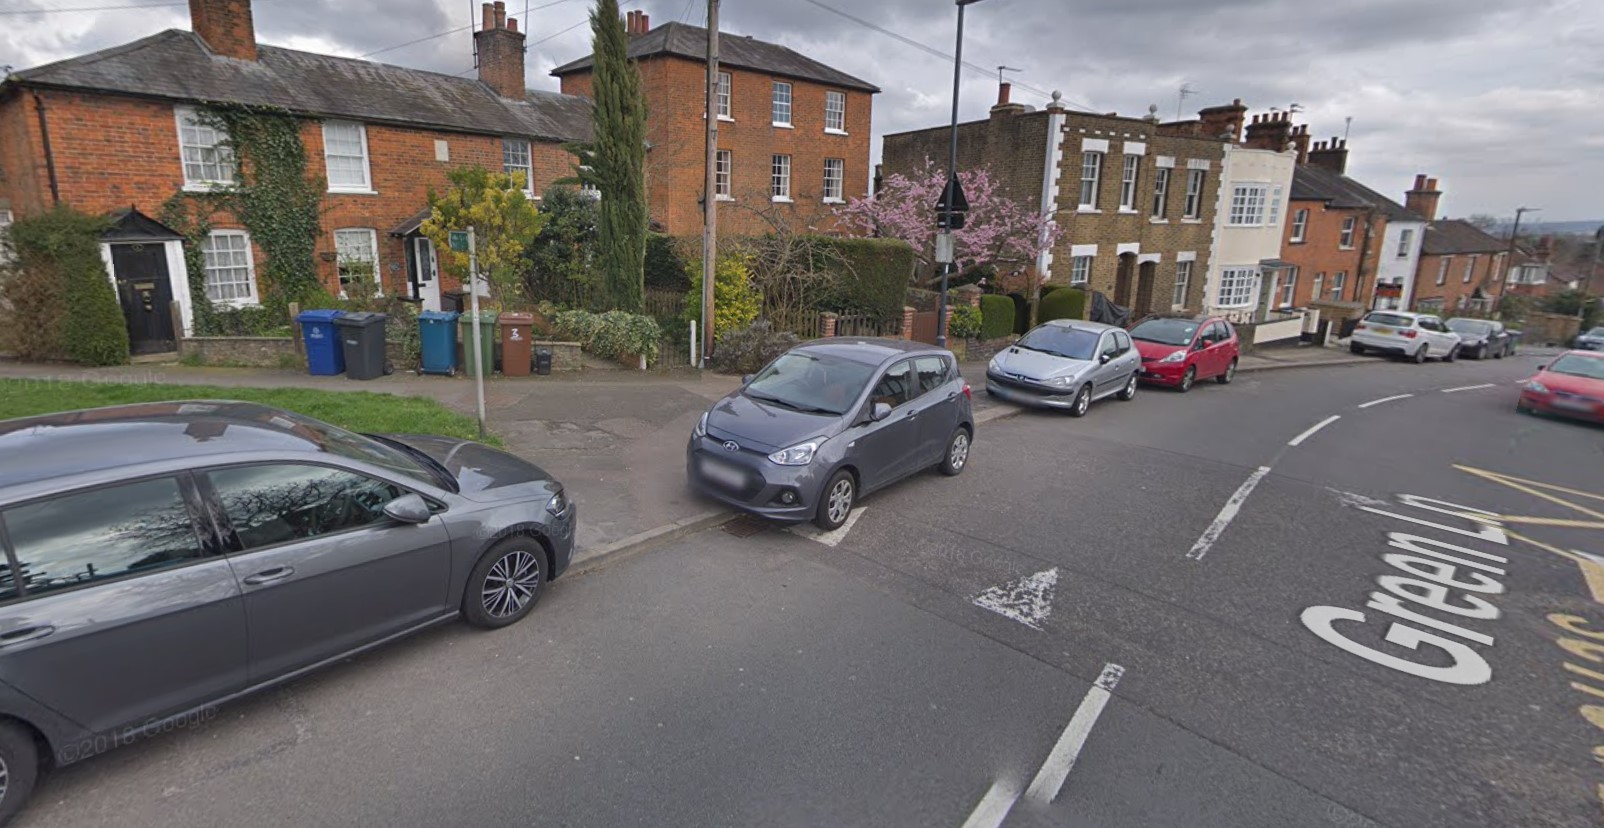 Green Lane in Stanmore, with several cars parked on the kerb (Image: Google Maps)